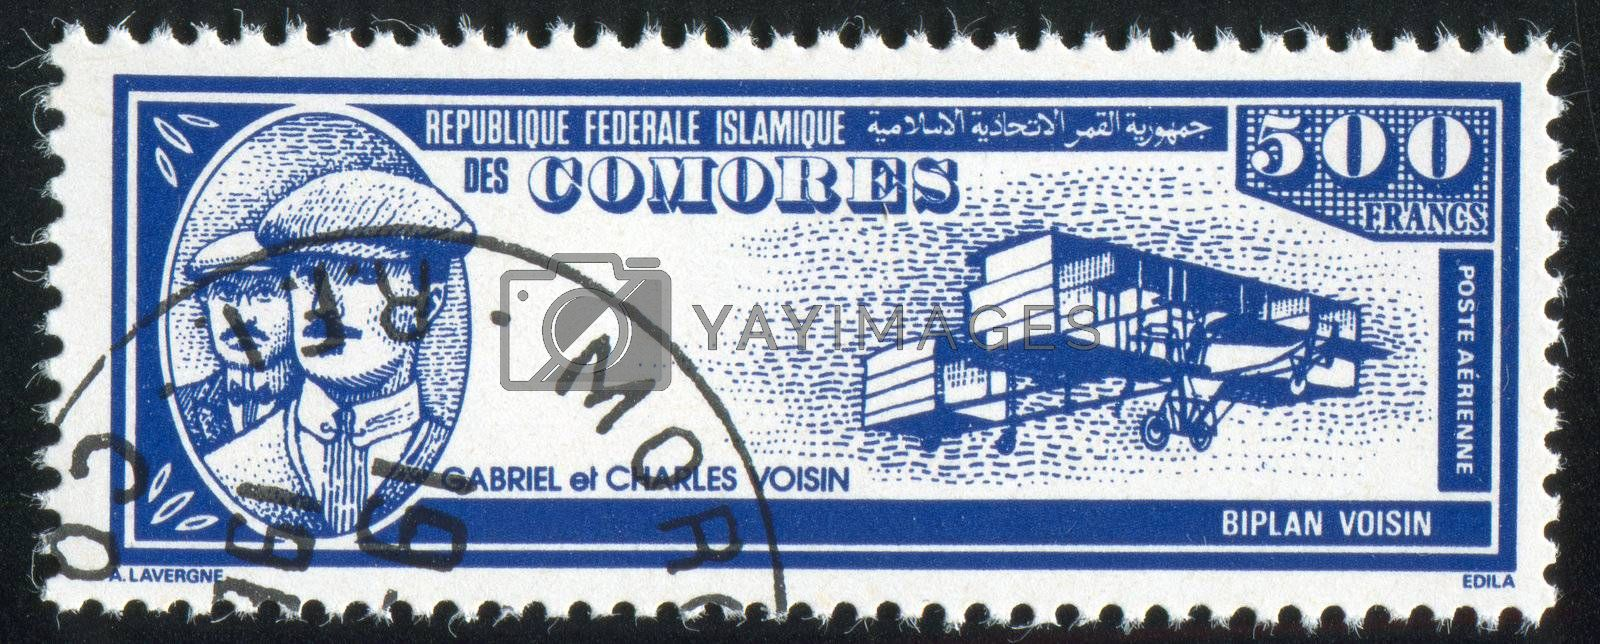 COMORO ISLANDS - CIRCA 1988: stamp printed by Comoro islands, shows airplane, Gabriel and Charles Voisin, circa 1988